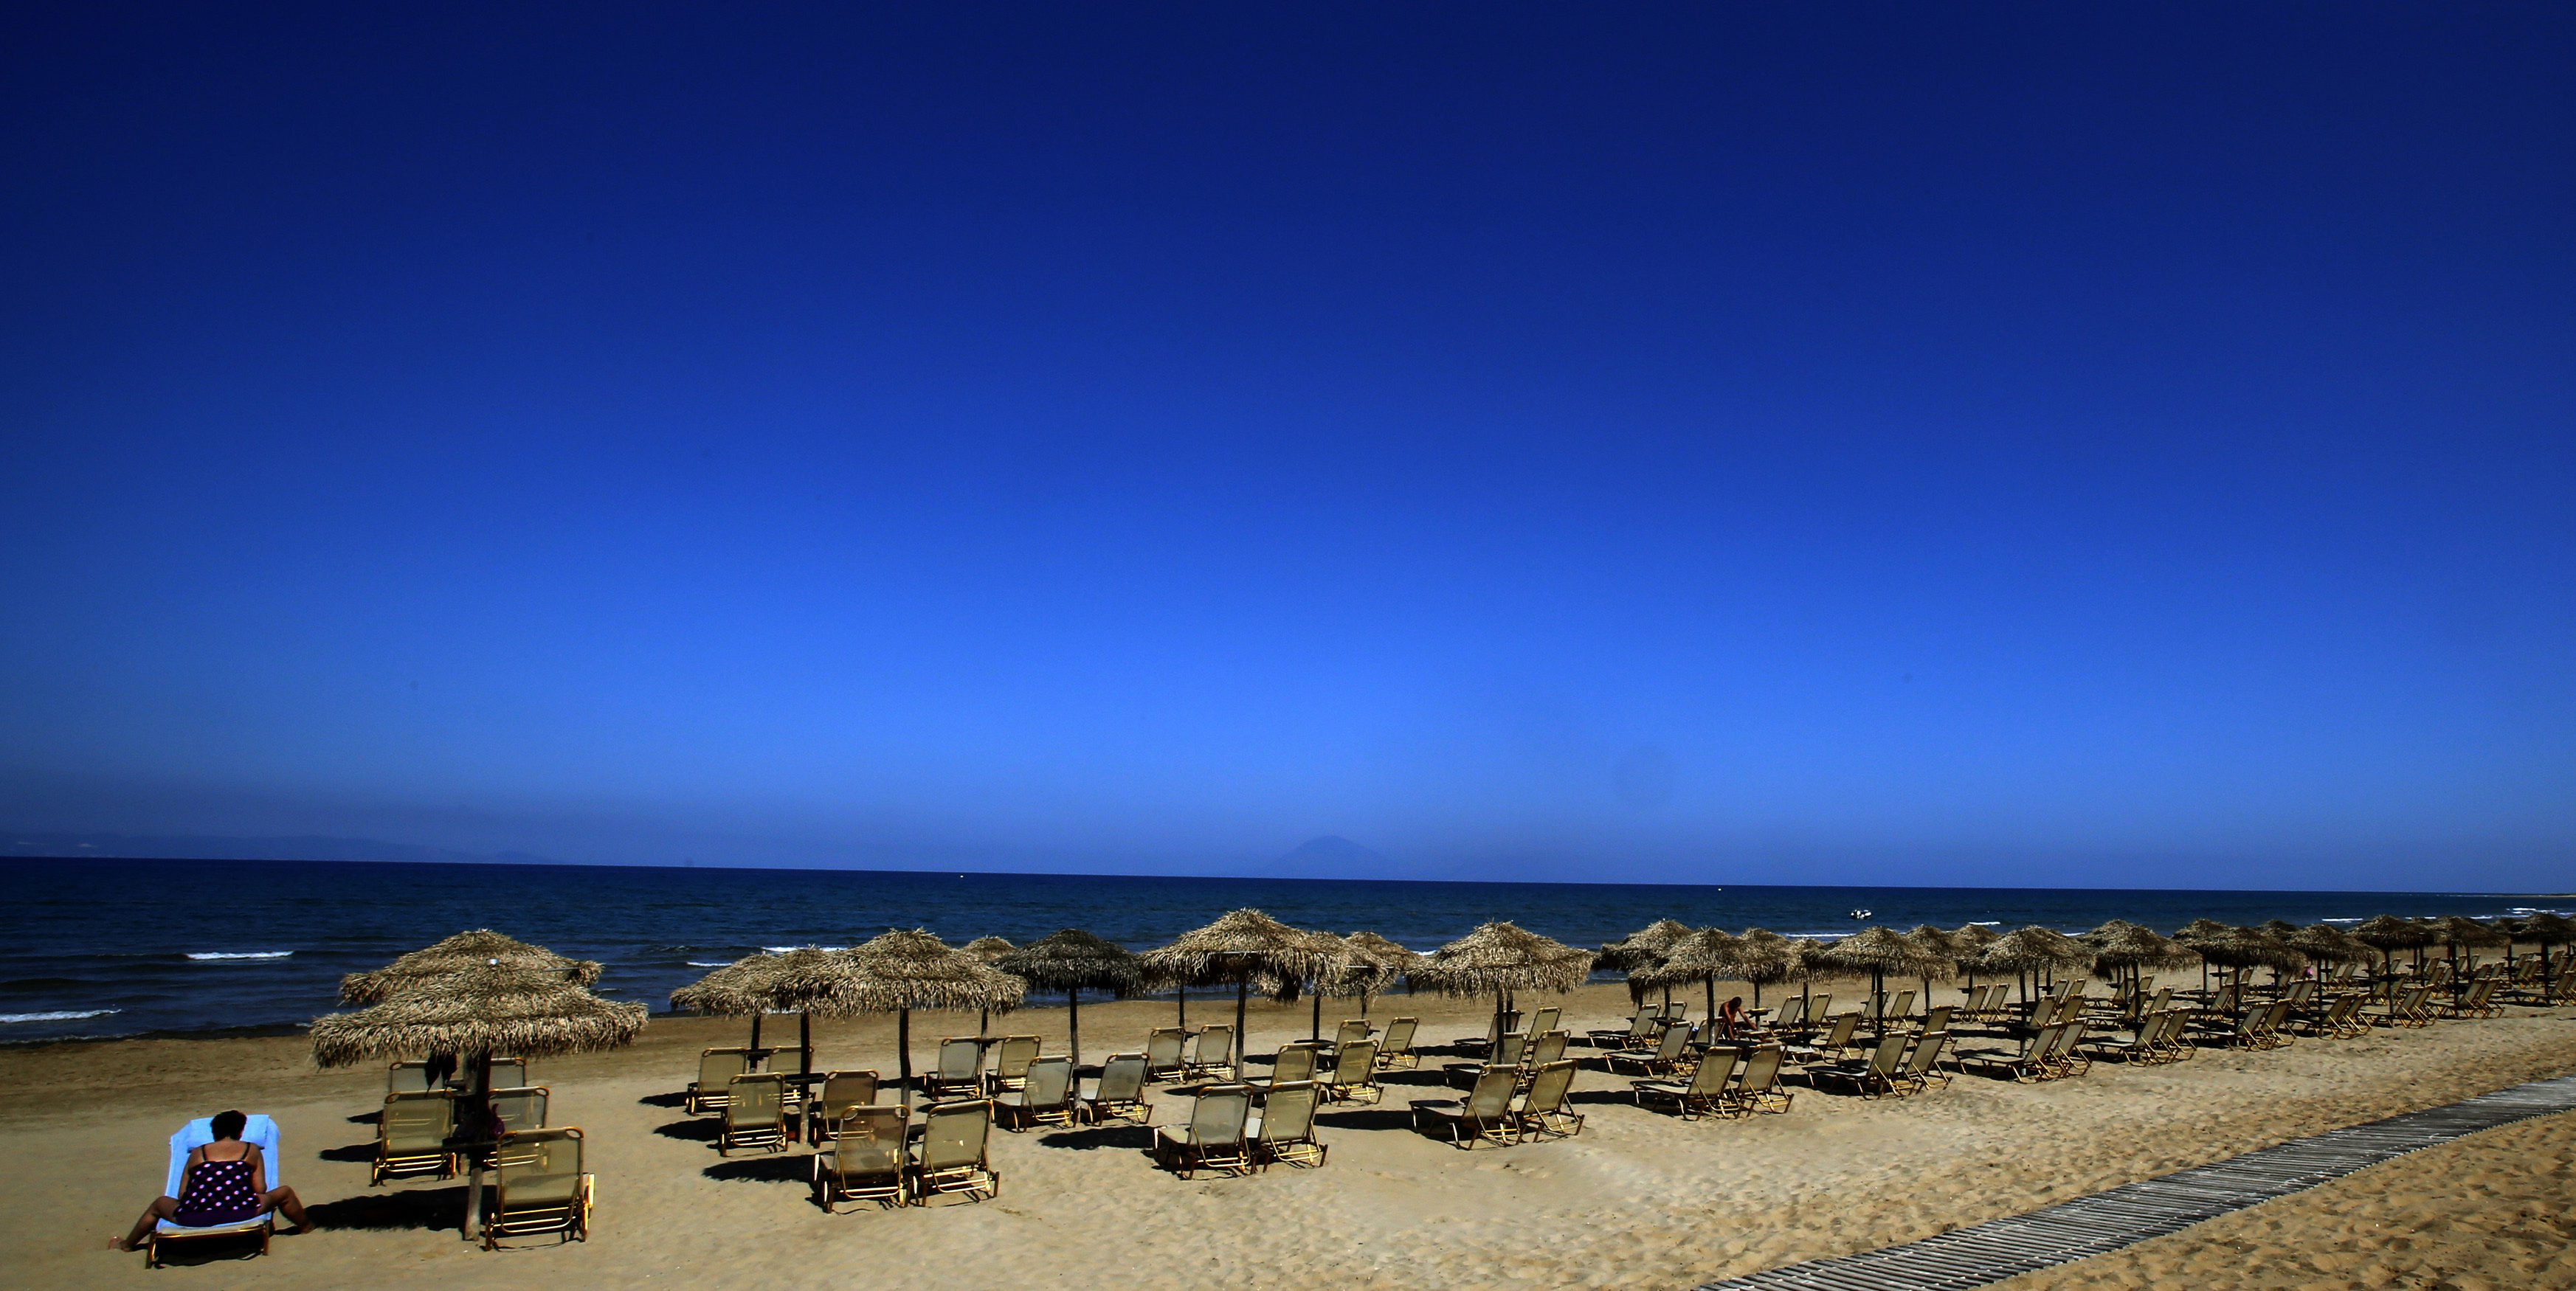 A German tourist sits on a sunbed on the beach of the Olympia Riviera resort in the town of Killini